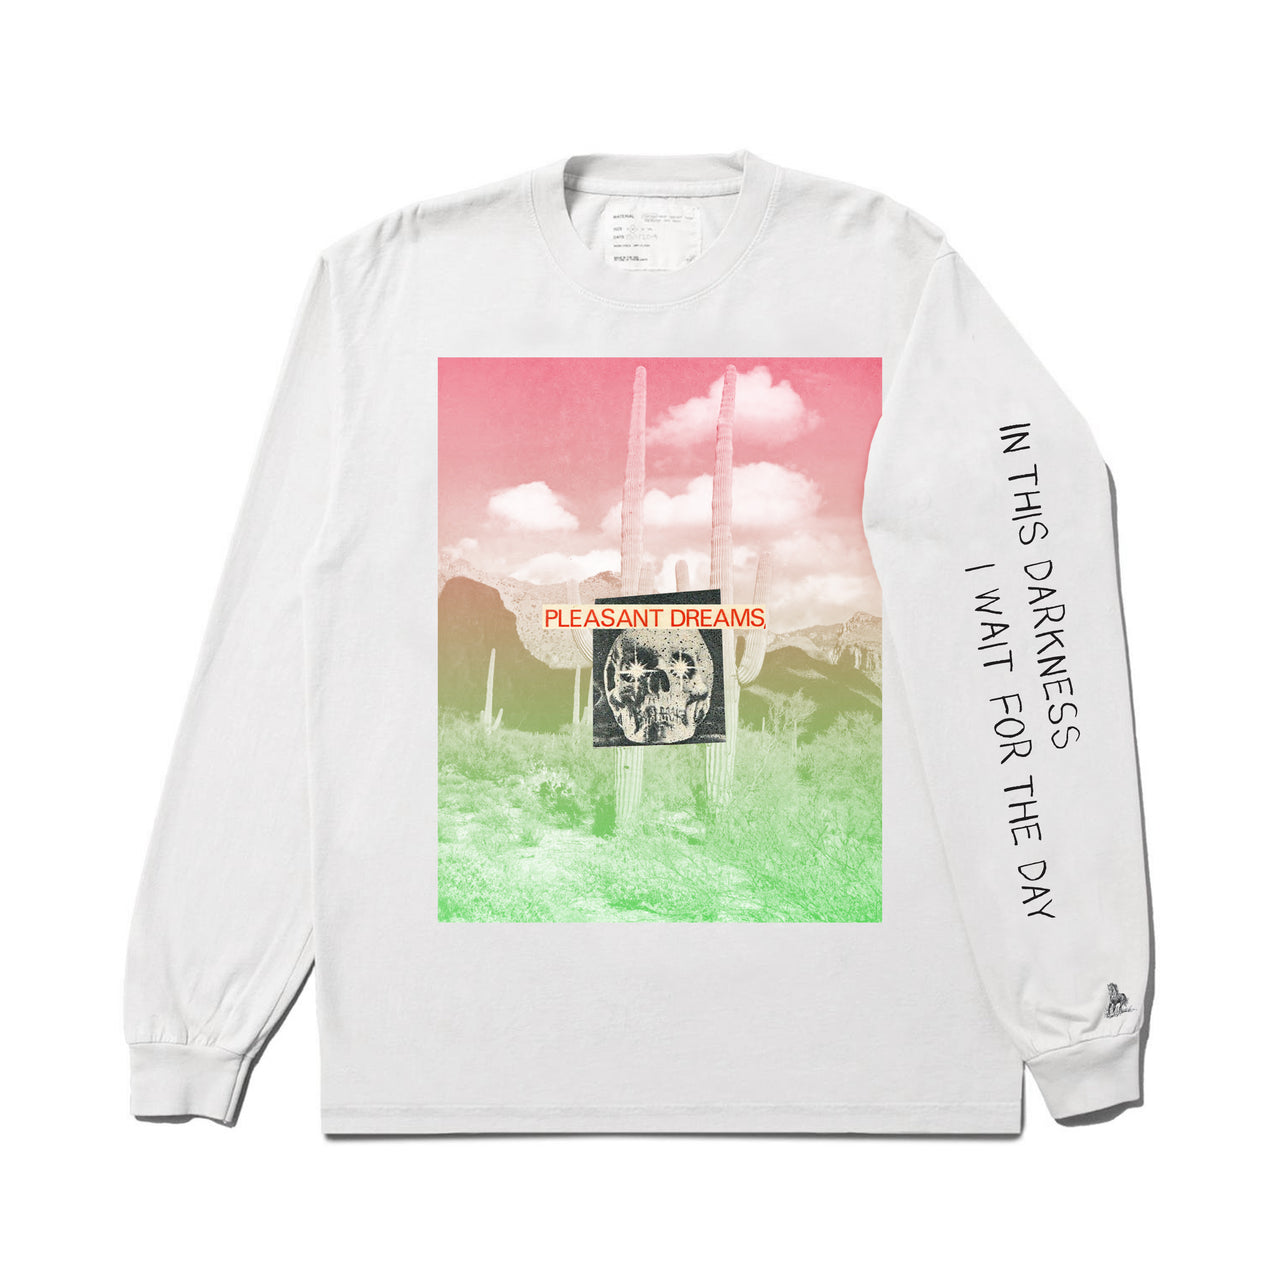 Pleasant Dreams Longsleeve T- Shirt